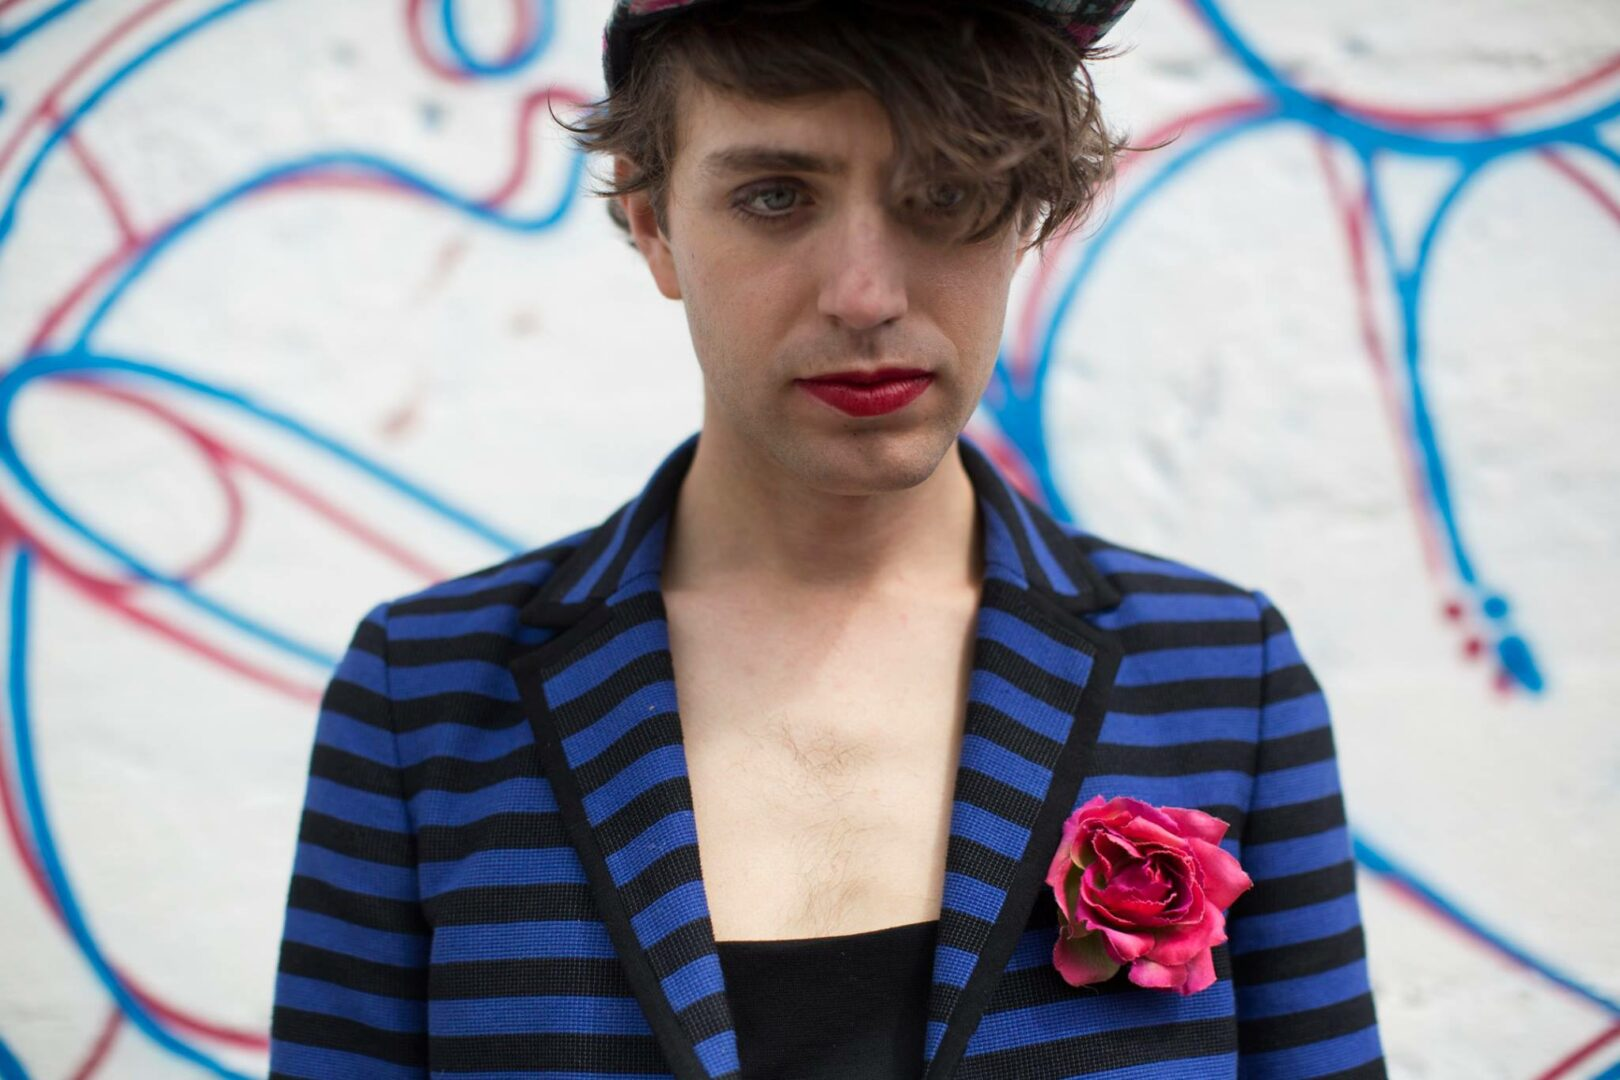 Ezra Furman Announces U.S. Tour + SXSW Appearance